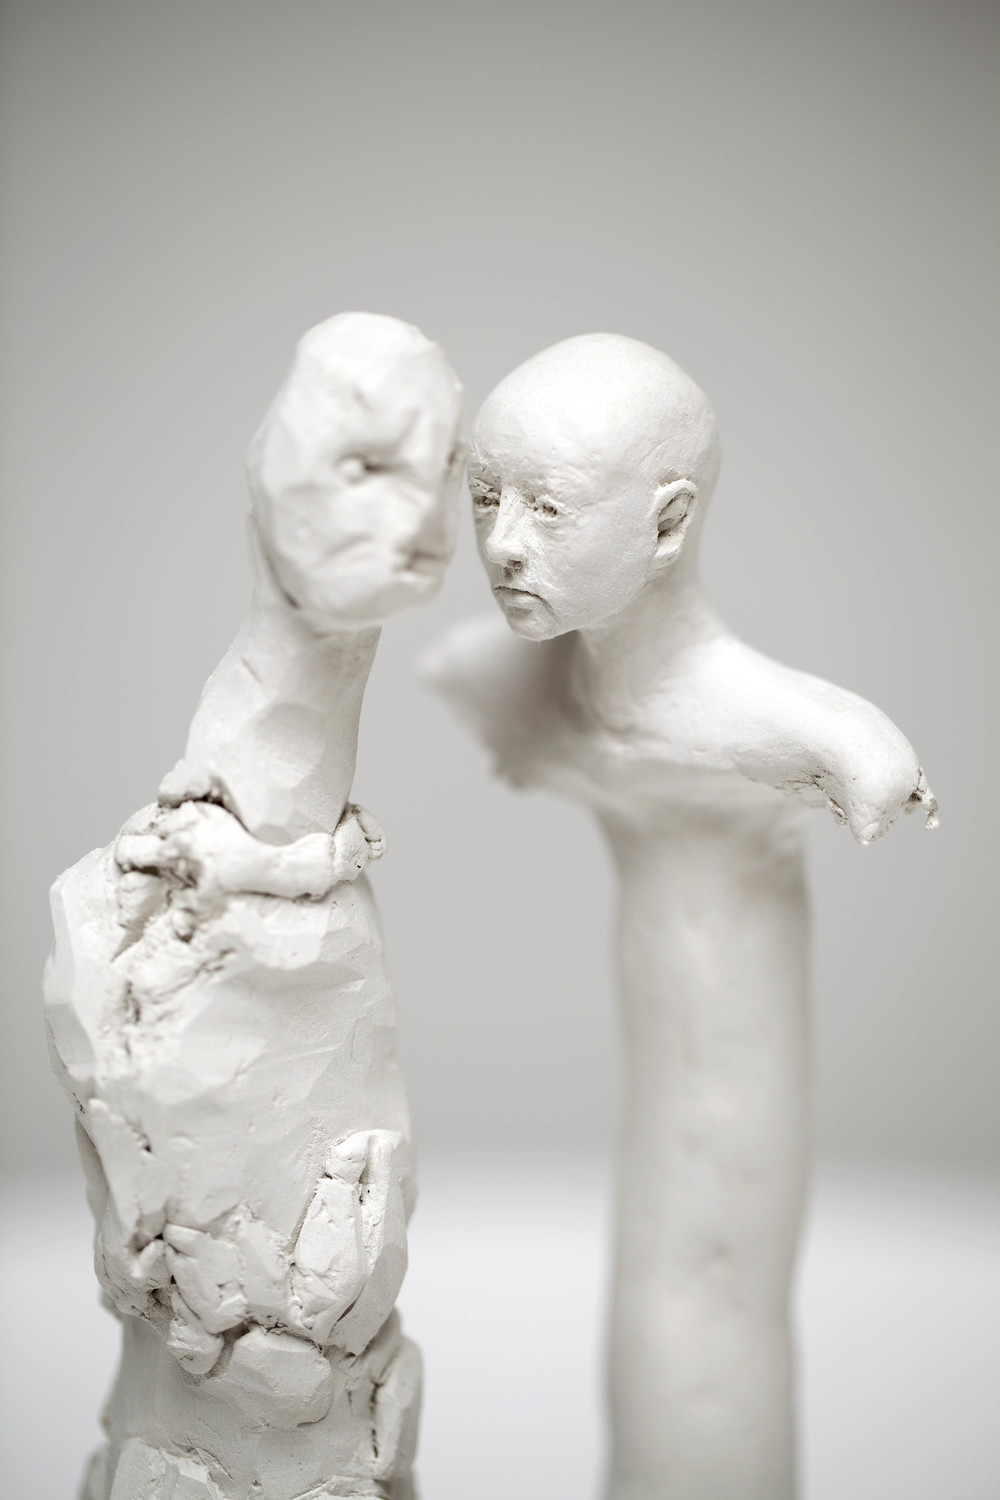 Man Mountain meets Whispering Woman, bronze, polymer modelling clay  25 x 15 x 10cm, 2011. Photography by Ashley Barber, Sarah Cottier Gallery. Private collection.